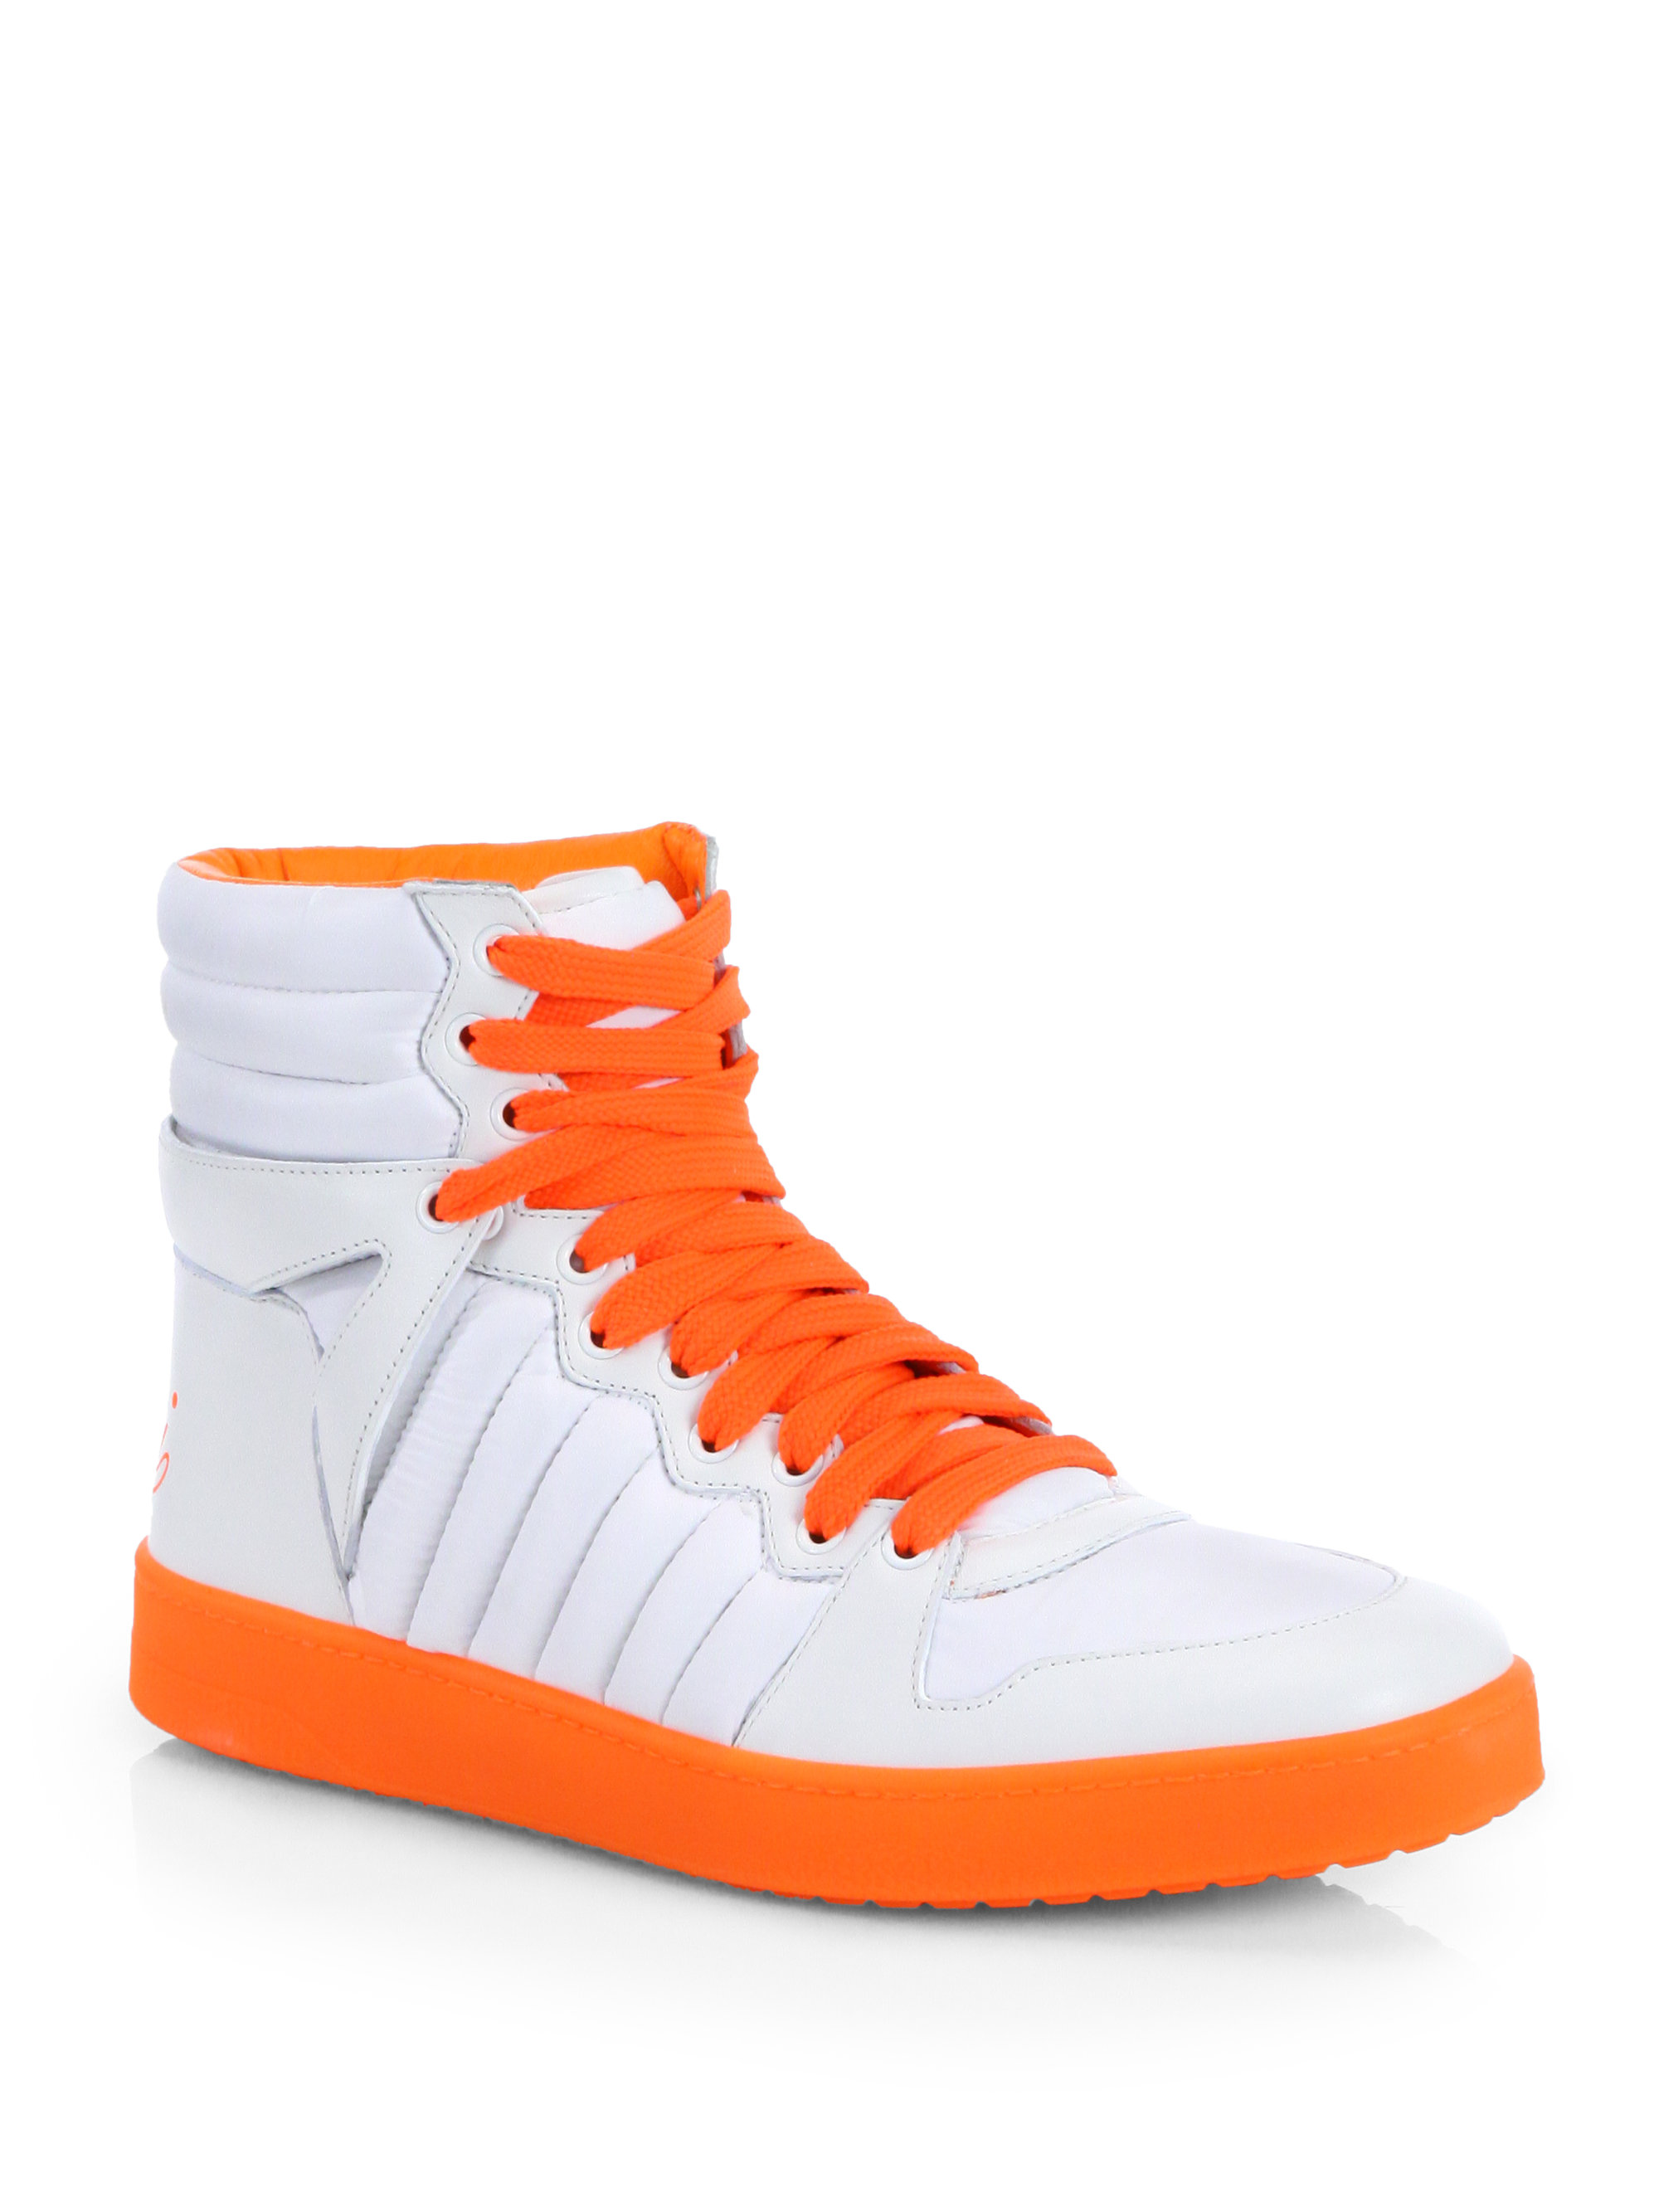 gucci hudson hightop sneakers in white for men white orange lyst. Black Bedroom Furniture Sets. Home Design Ideas